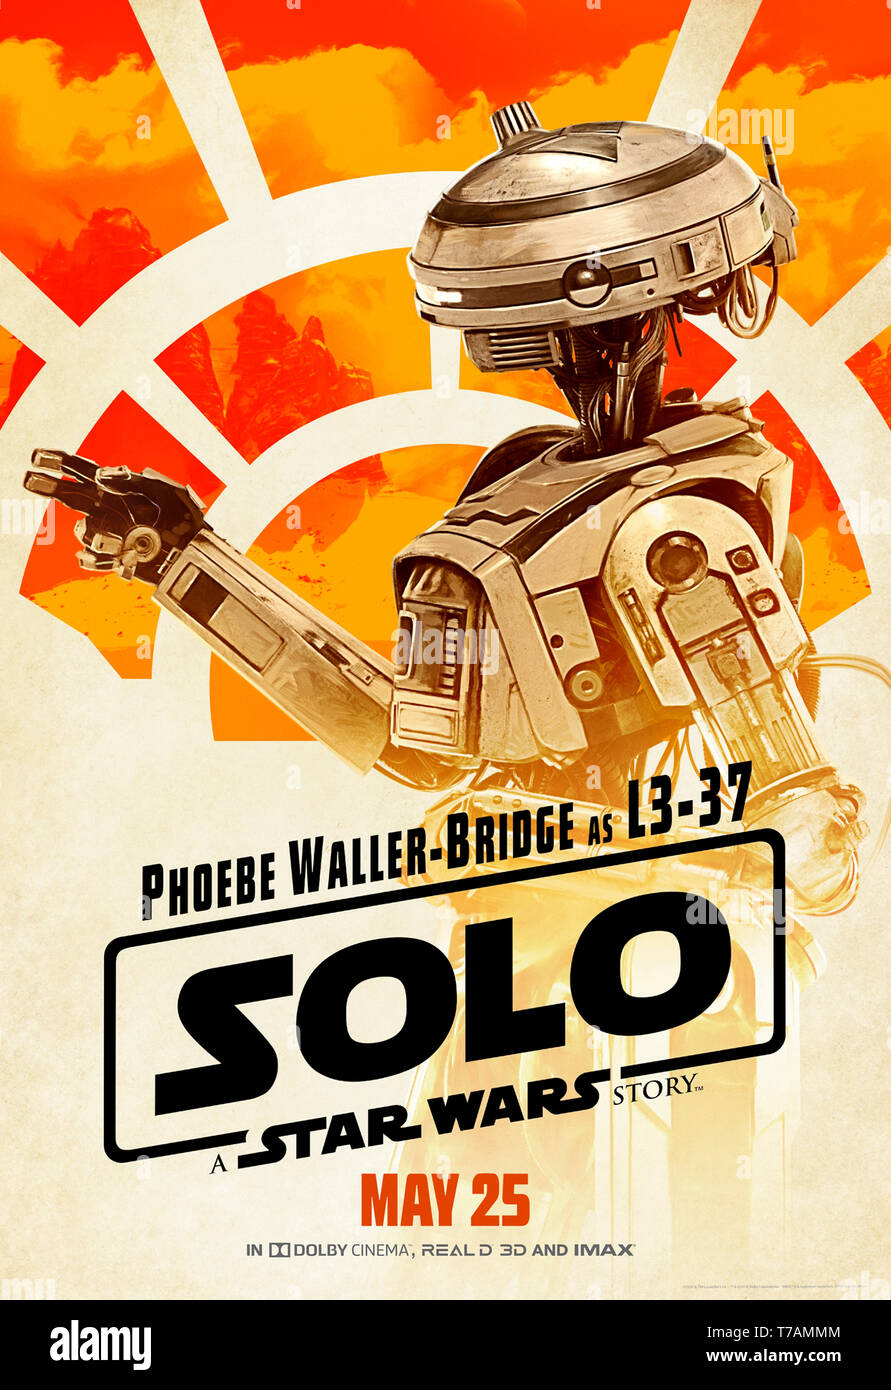 Solo: A Star Wars Story (2018) directed by Ron Howard introducing the  self-made piloting droid L3-37 voiced by Phoebe Waller-Bridge. - Stock Image